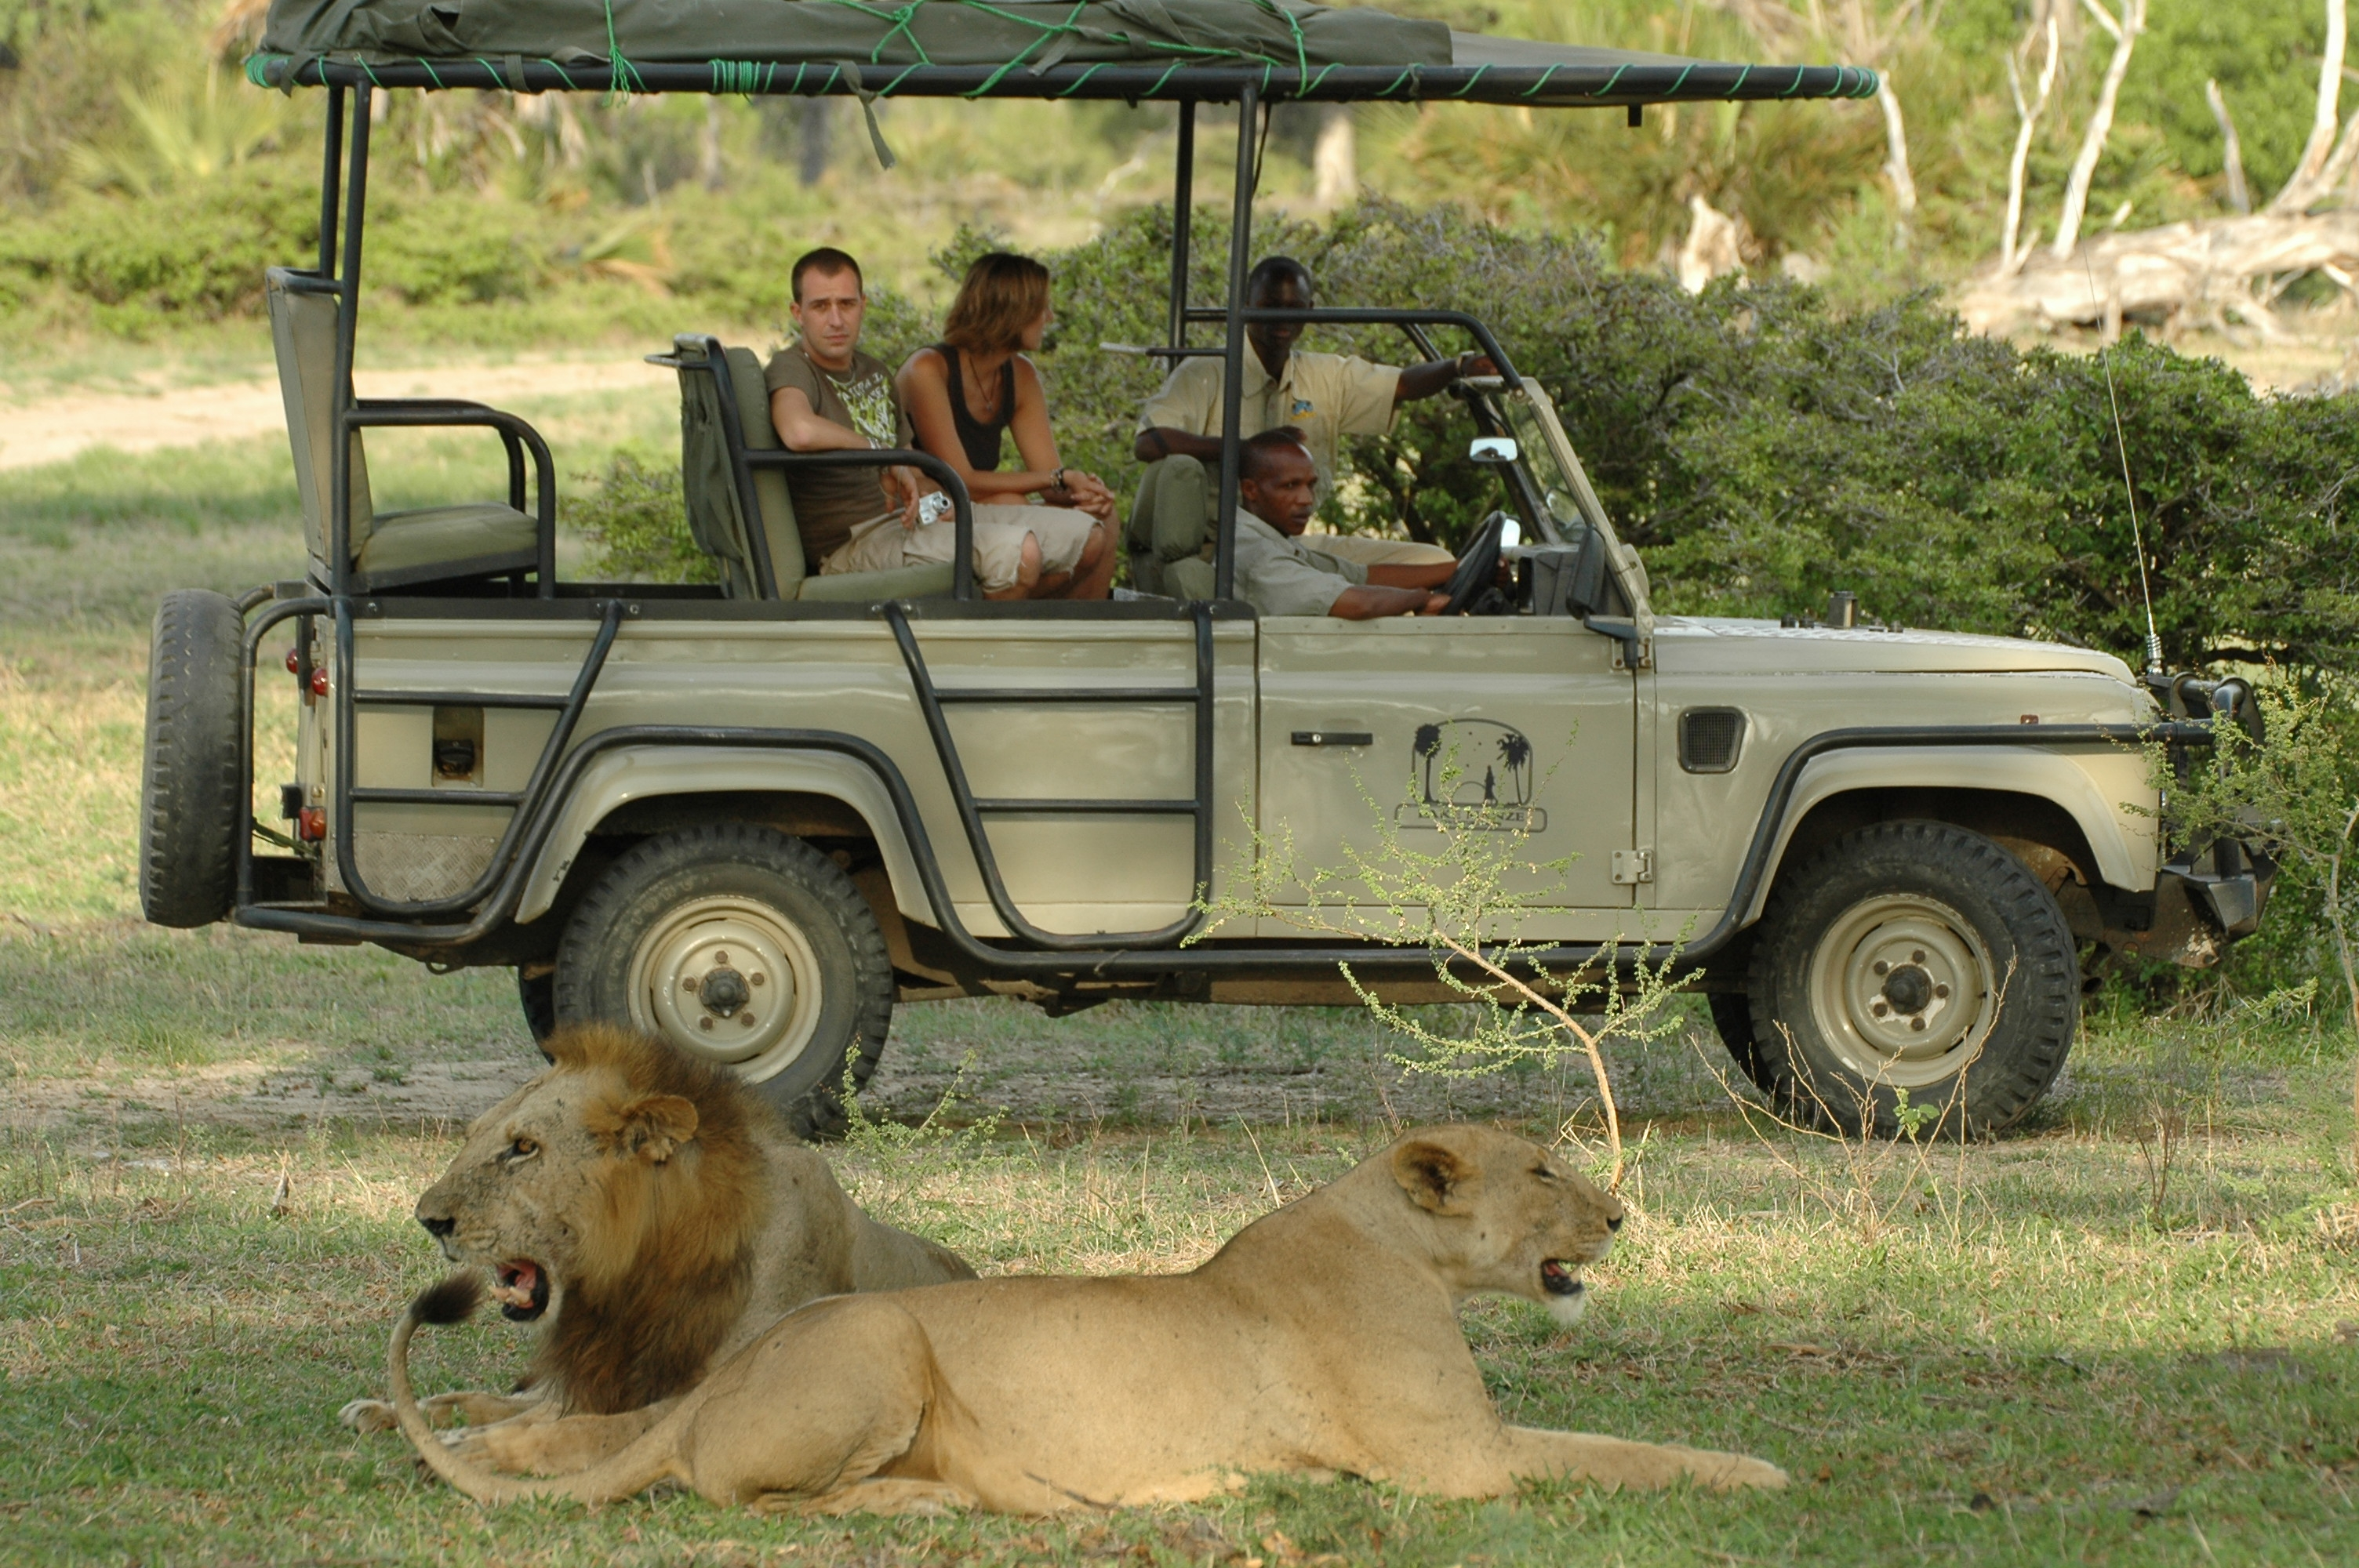 Ngorongoro Crater Safari – 3 days, 2 nights